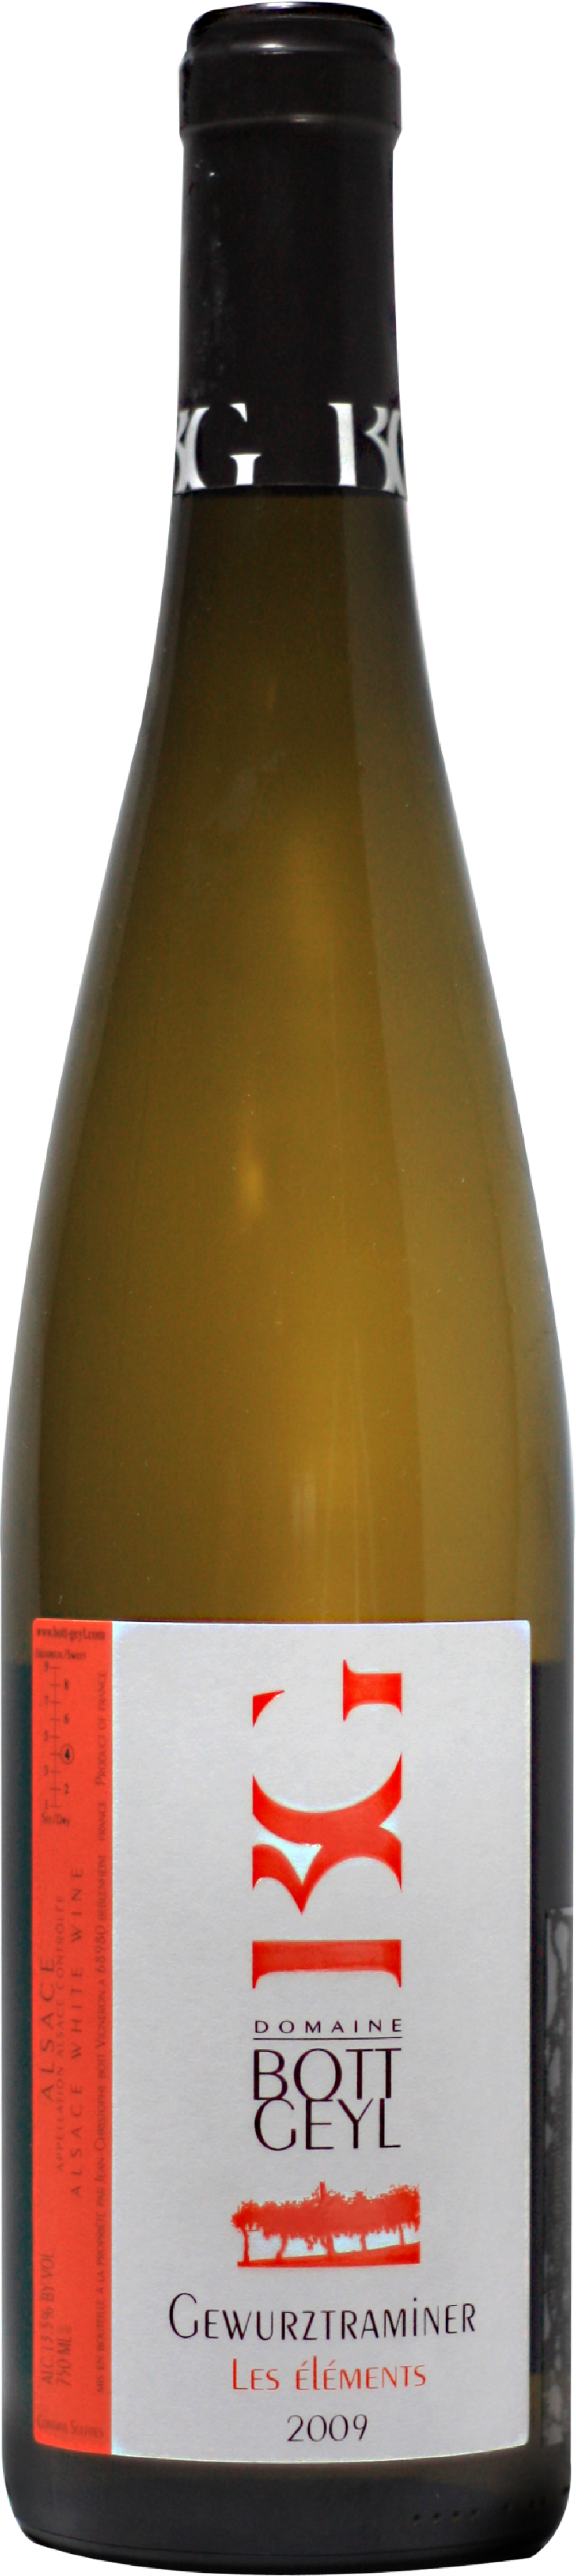 files/images/wines/France/domaine-bott-geyl-alsace/FEBCE2812_pic_big.png